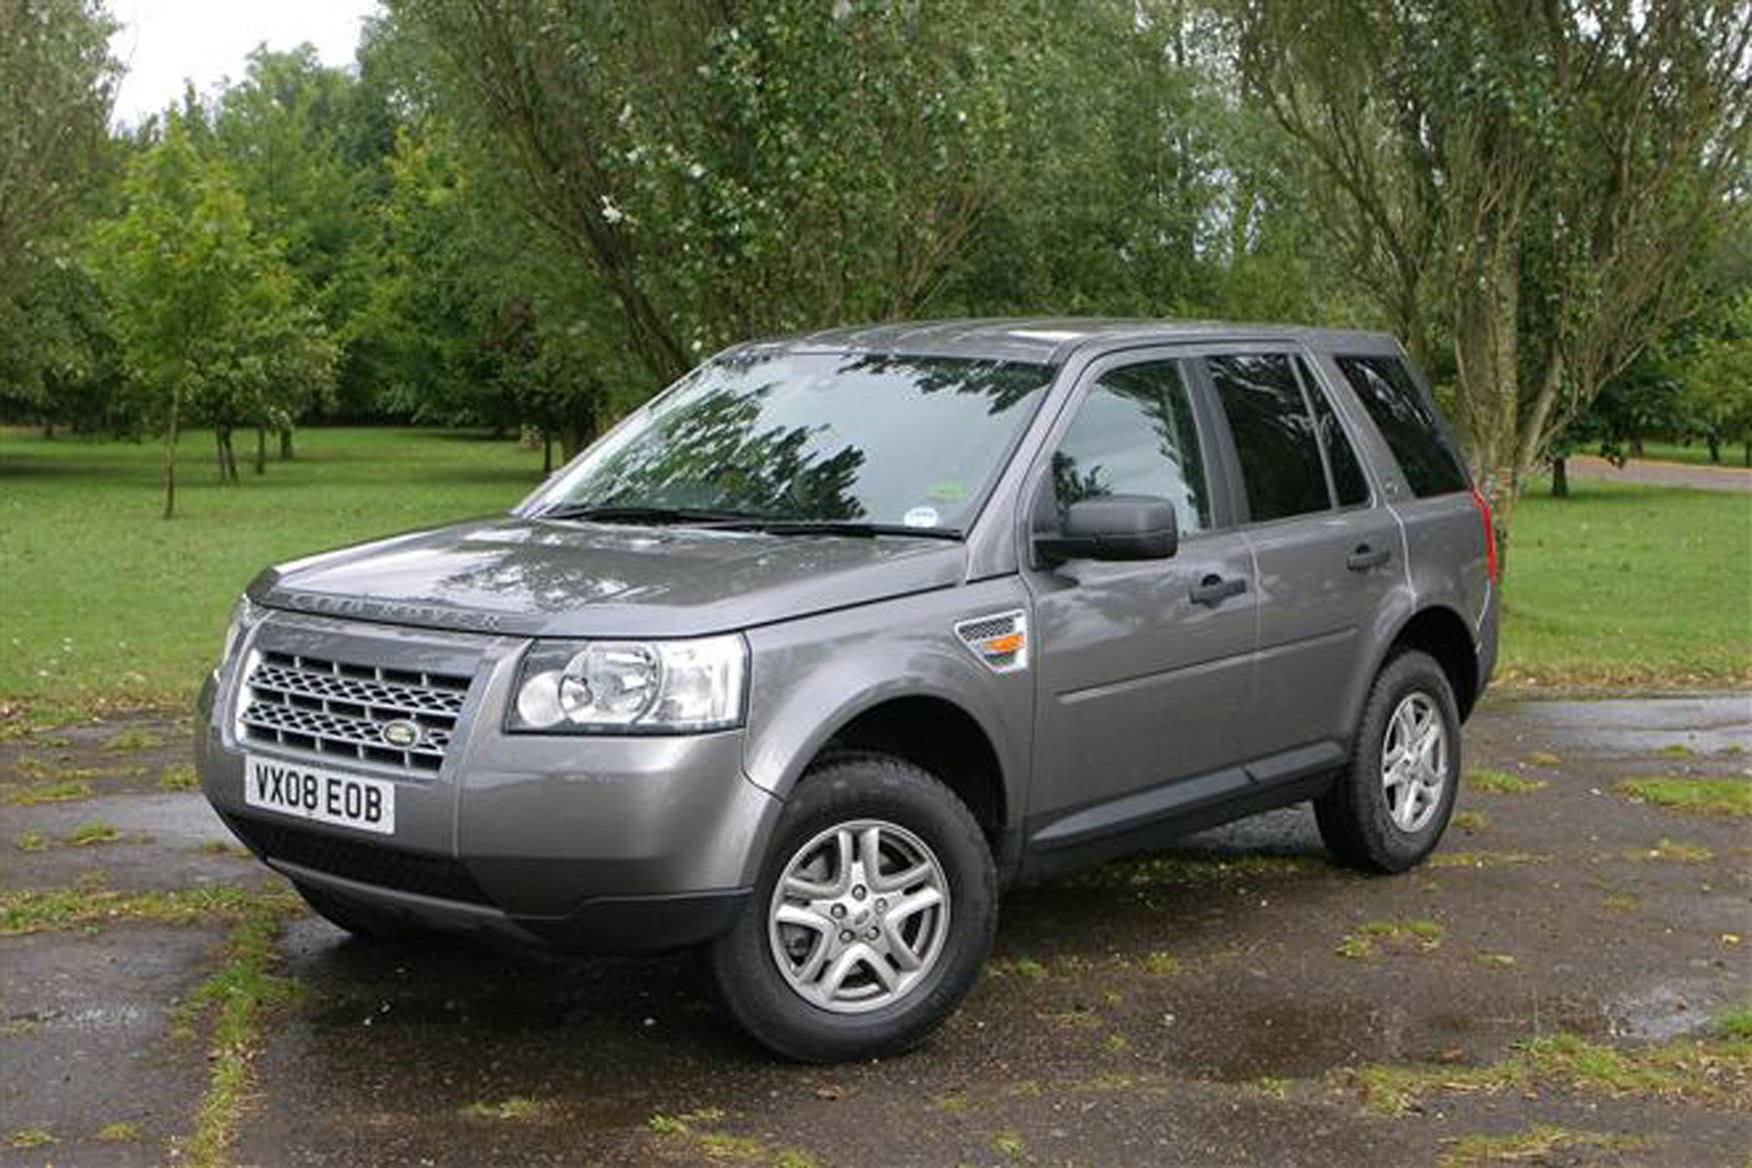 Land Rover Freelander review on Parkers Vans - exterior front